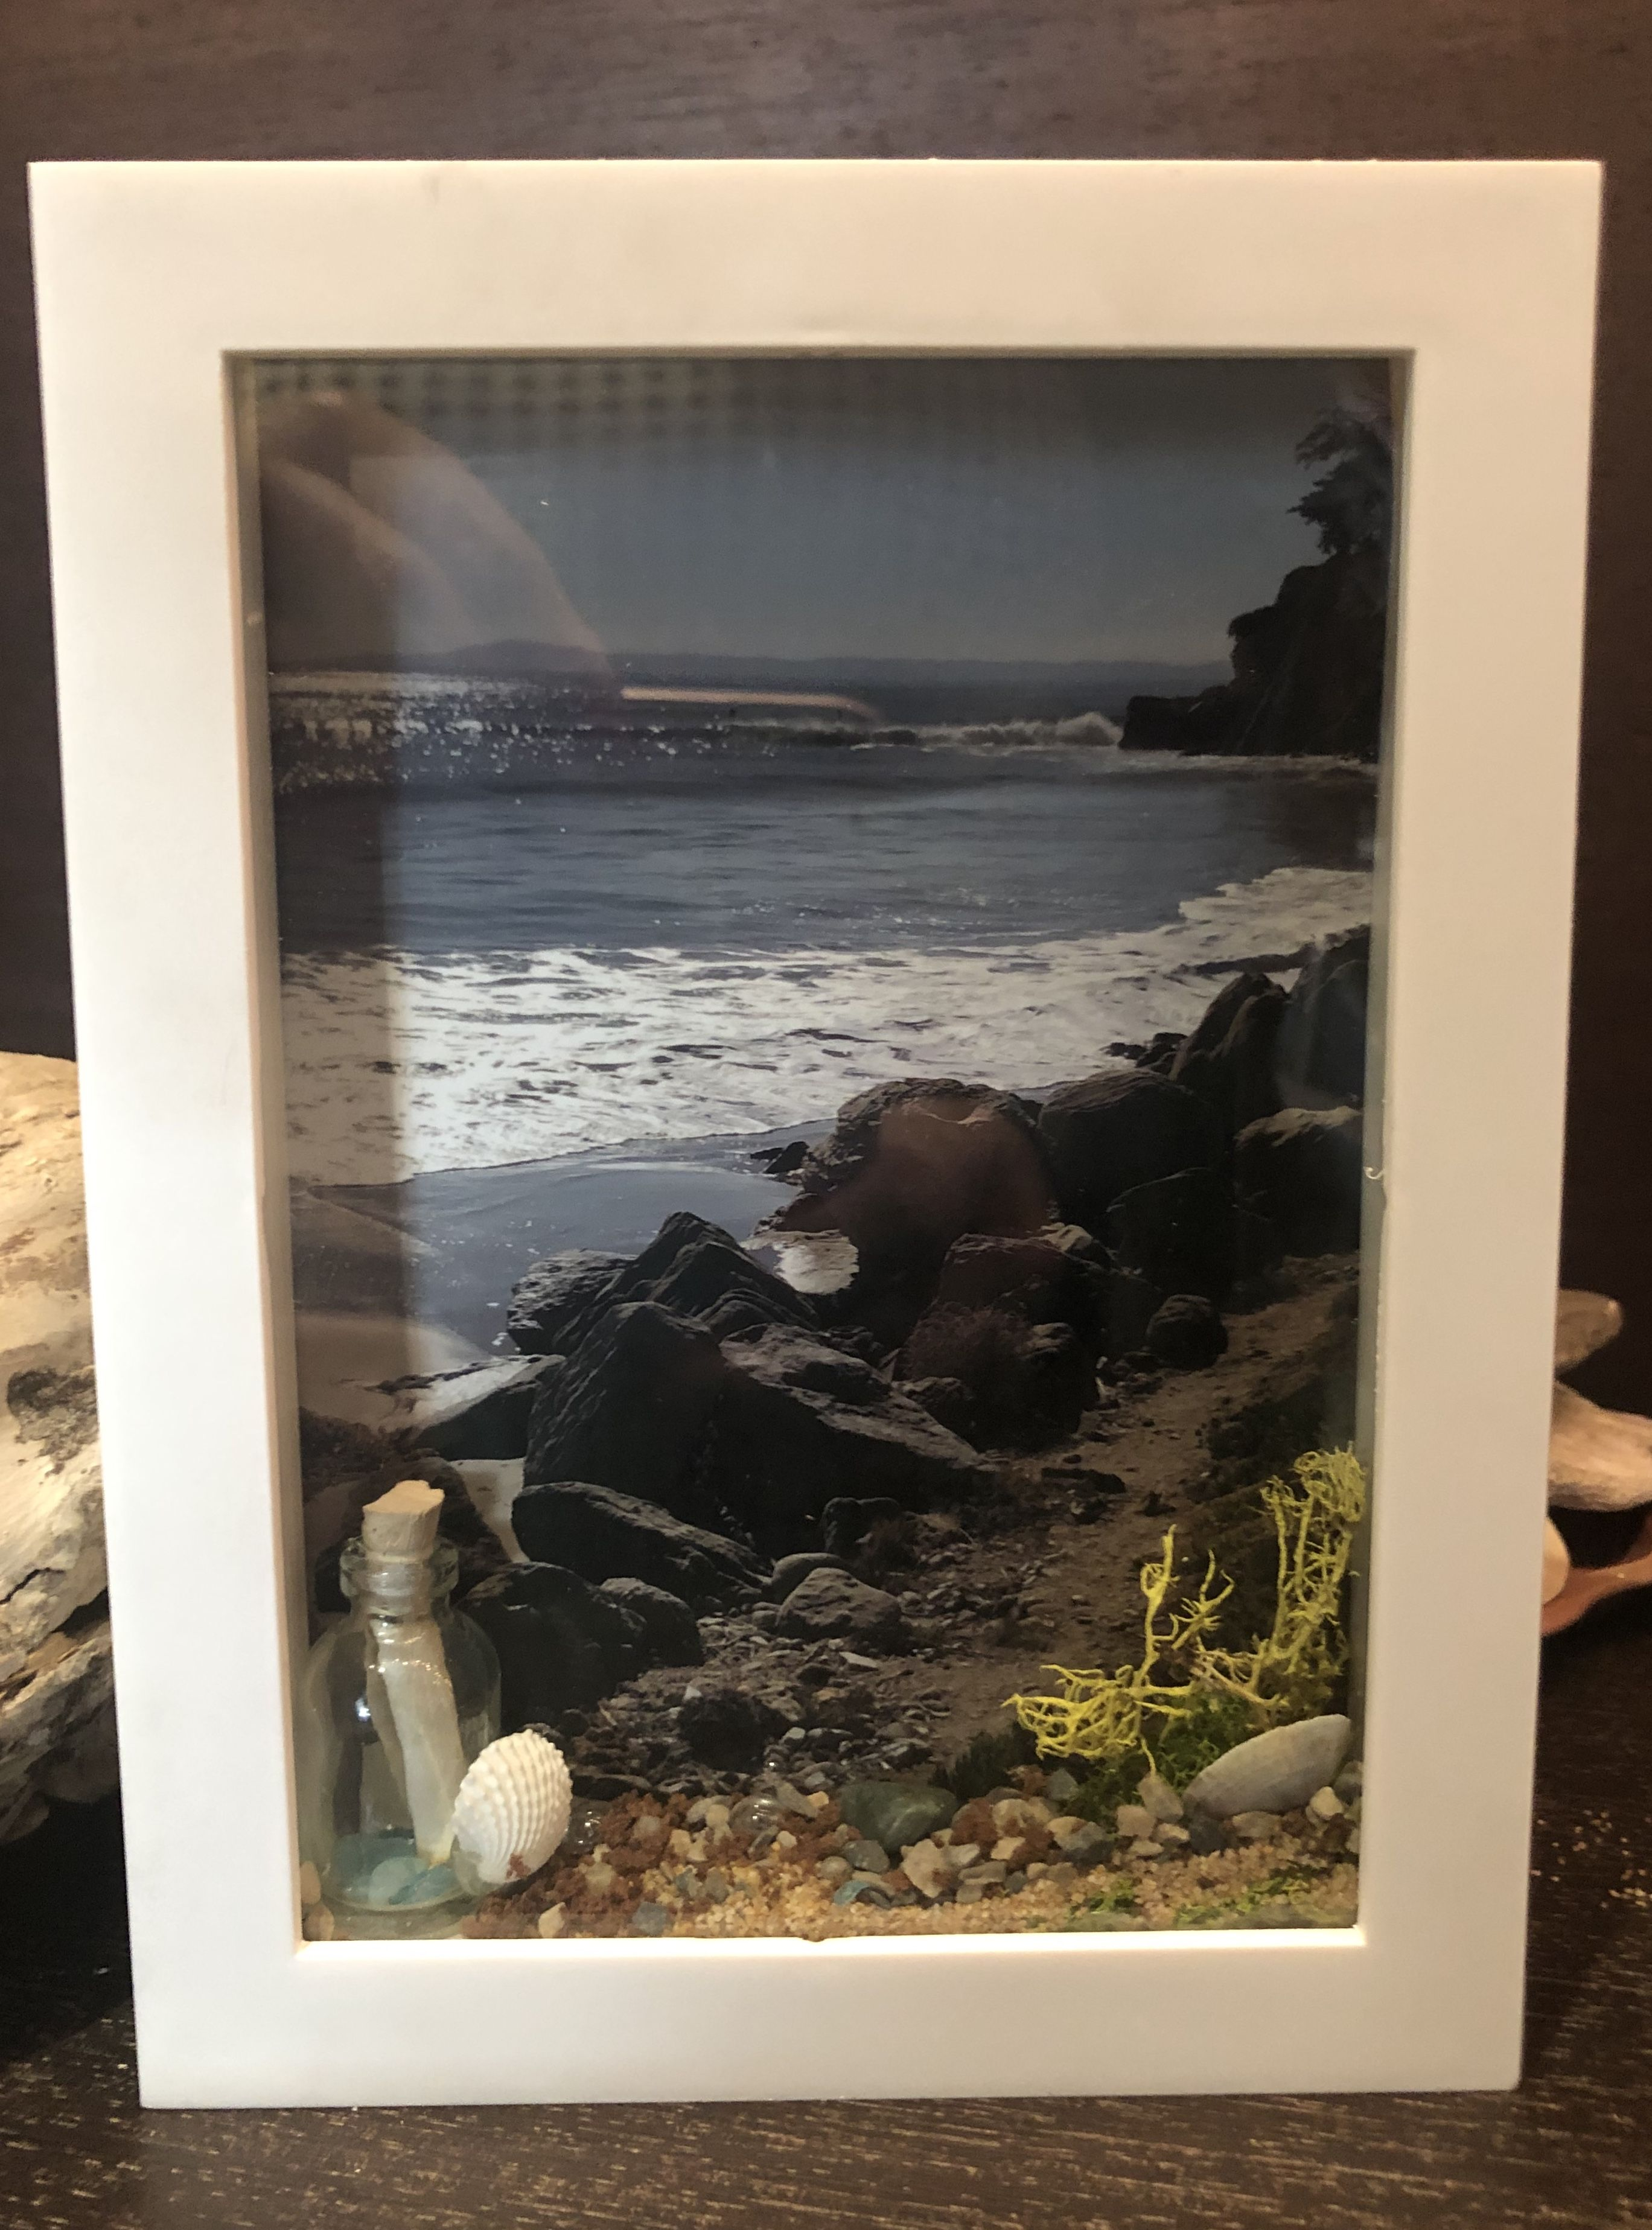 I Ve Created This Shadow Box Using Items I Collected While On My